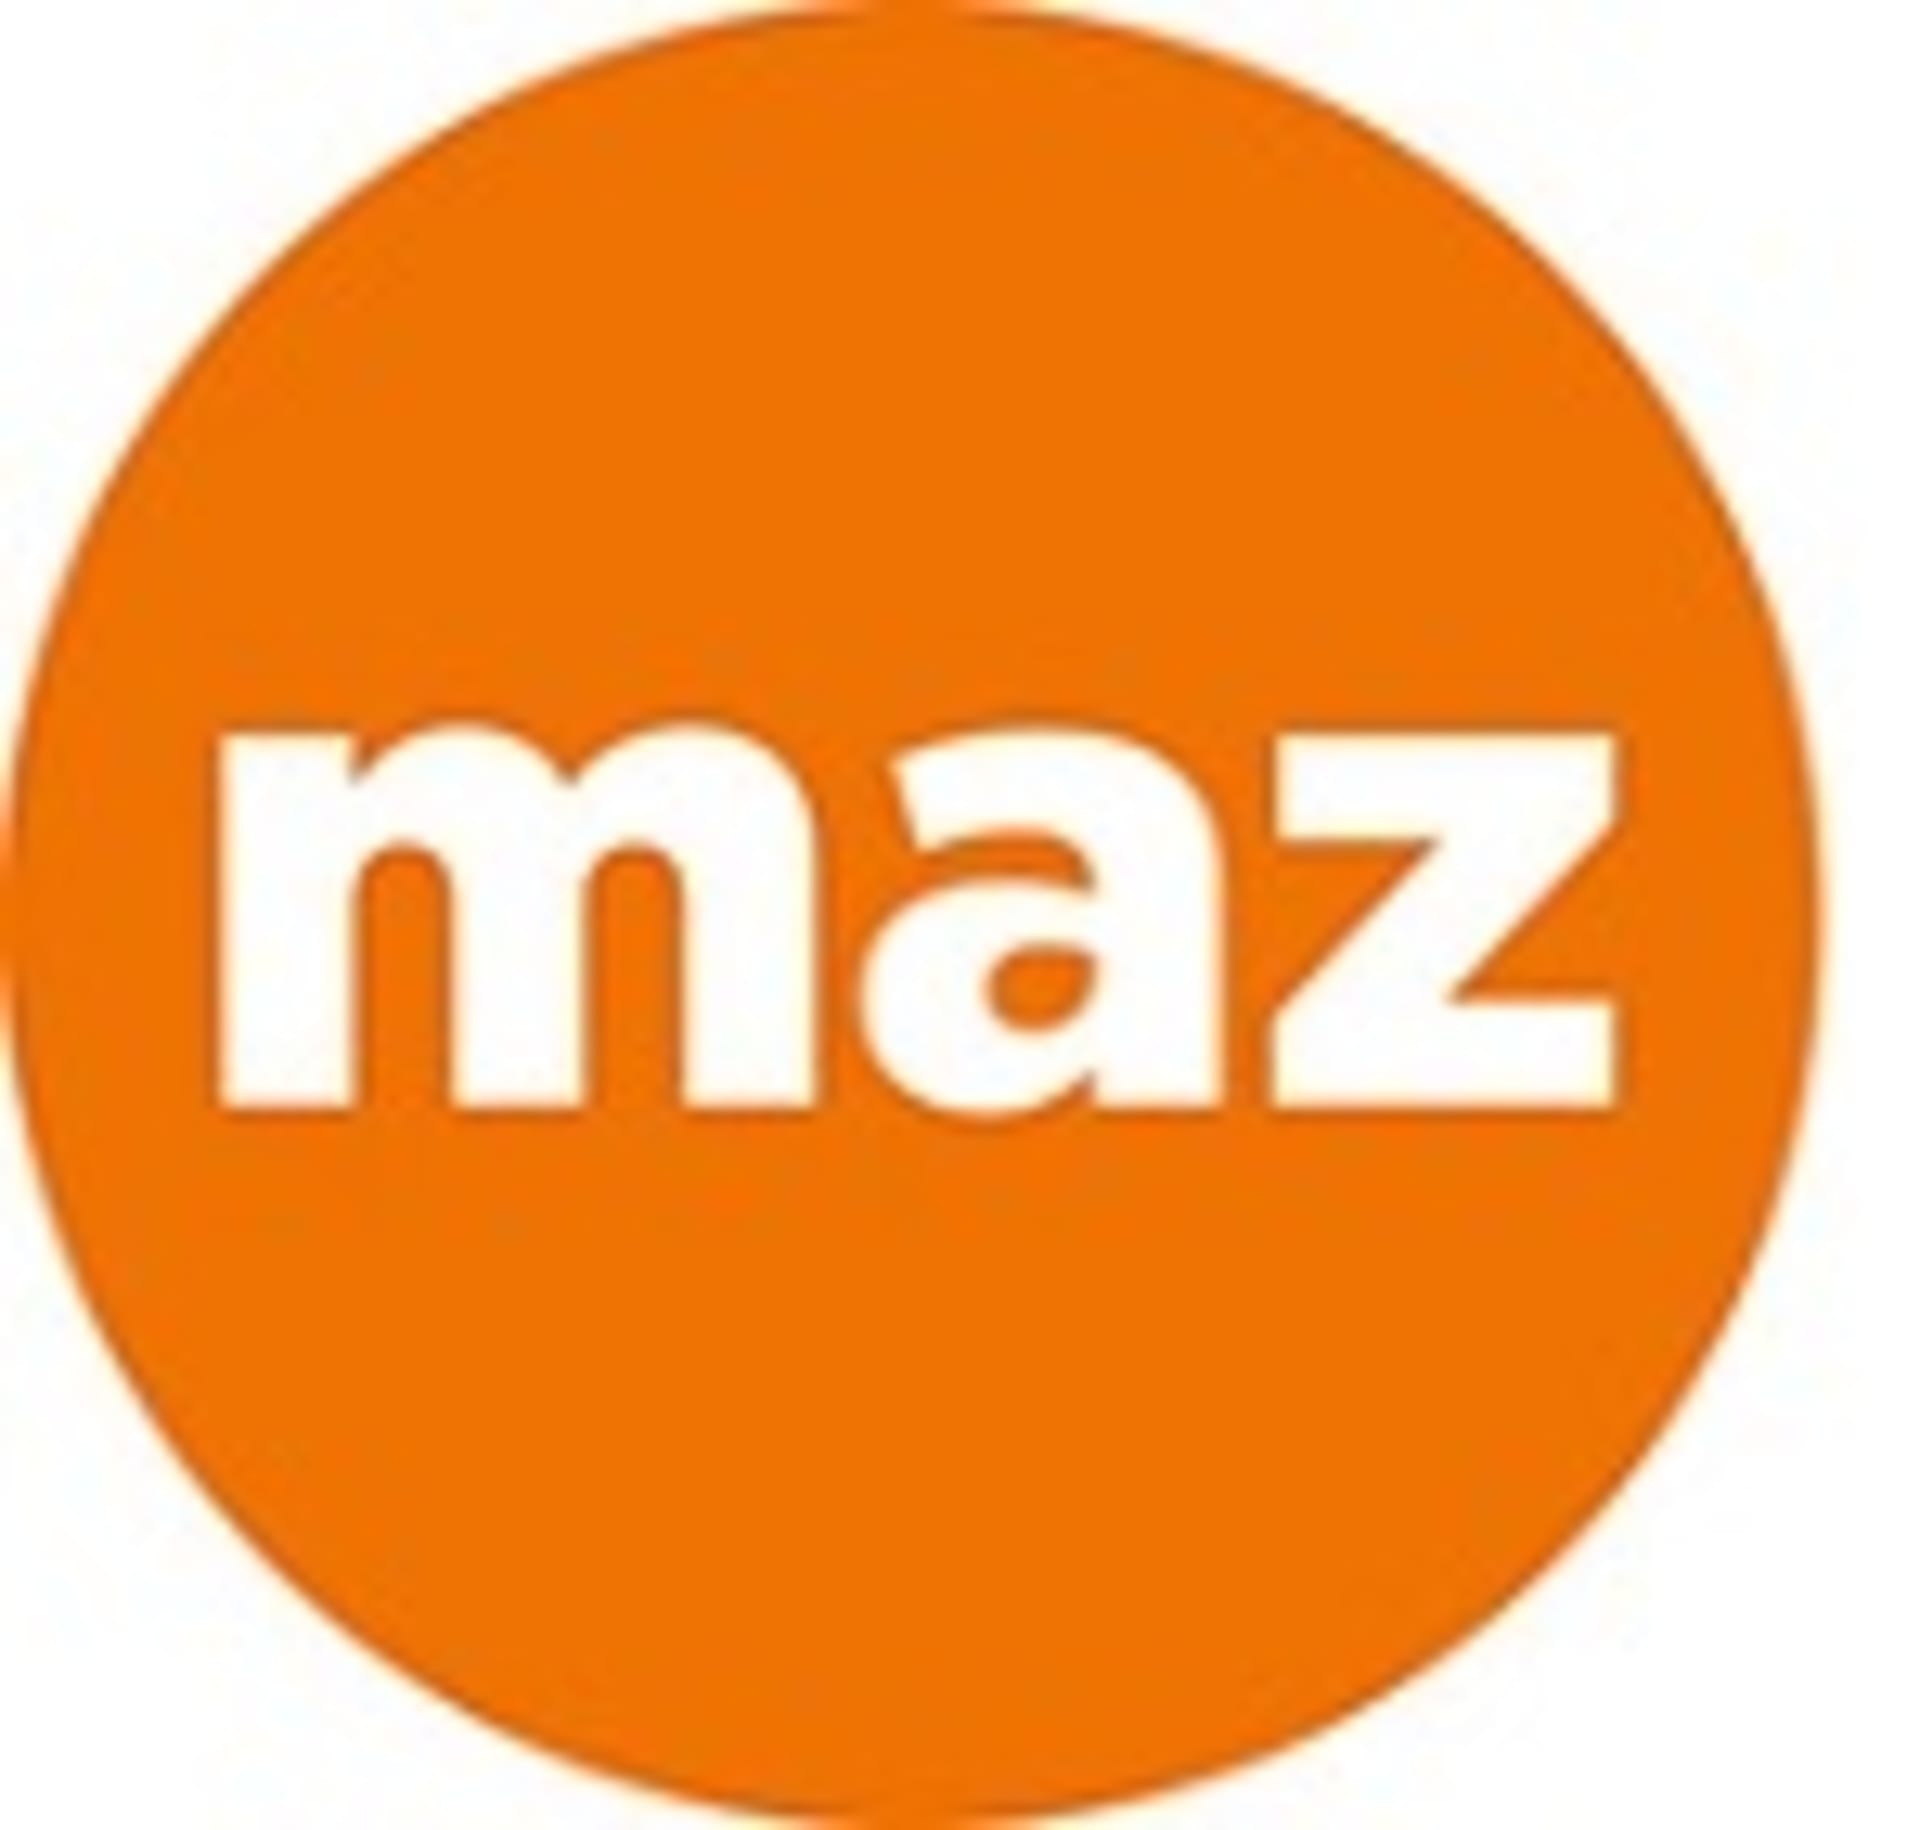 shows the logo from the company maz - mein autozentrum